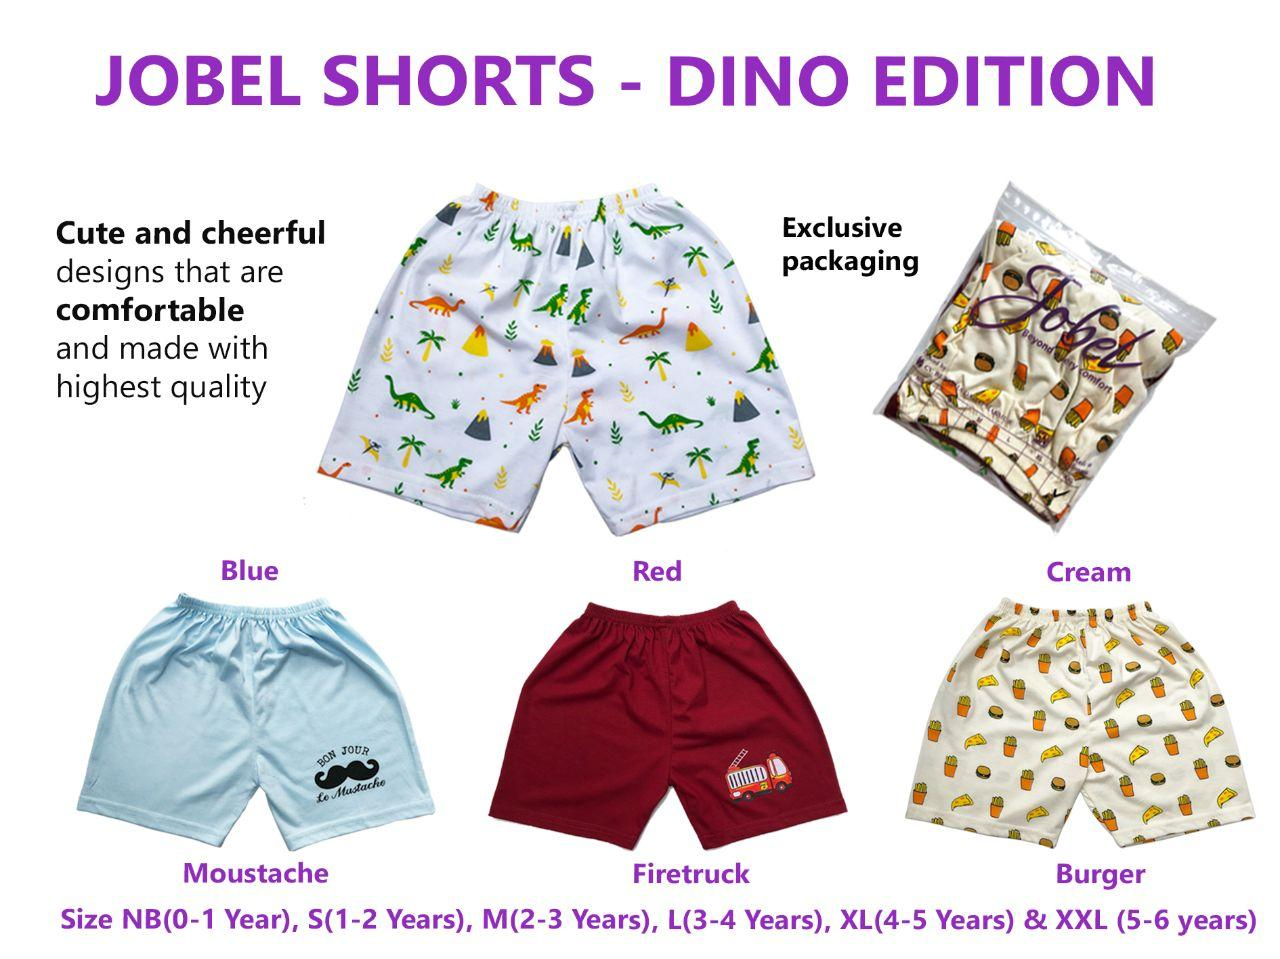 Jobel Short Pants ( Celana Pendek ) Dino Edition ( ISI 4 ) - by kazel